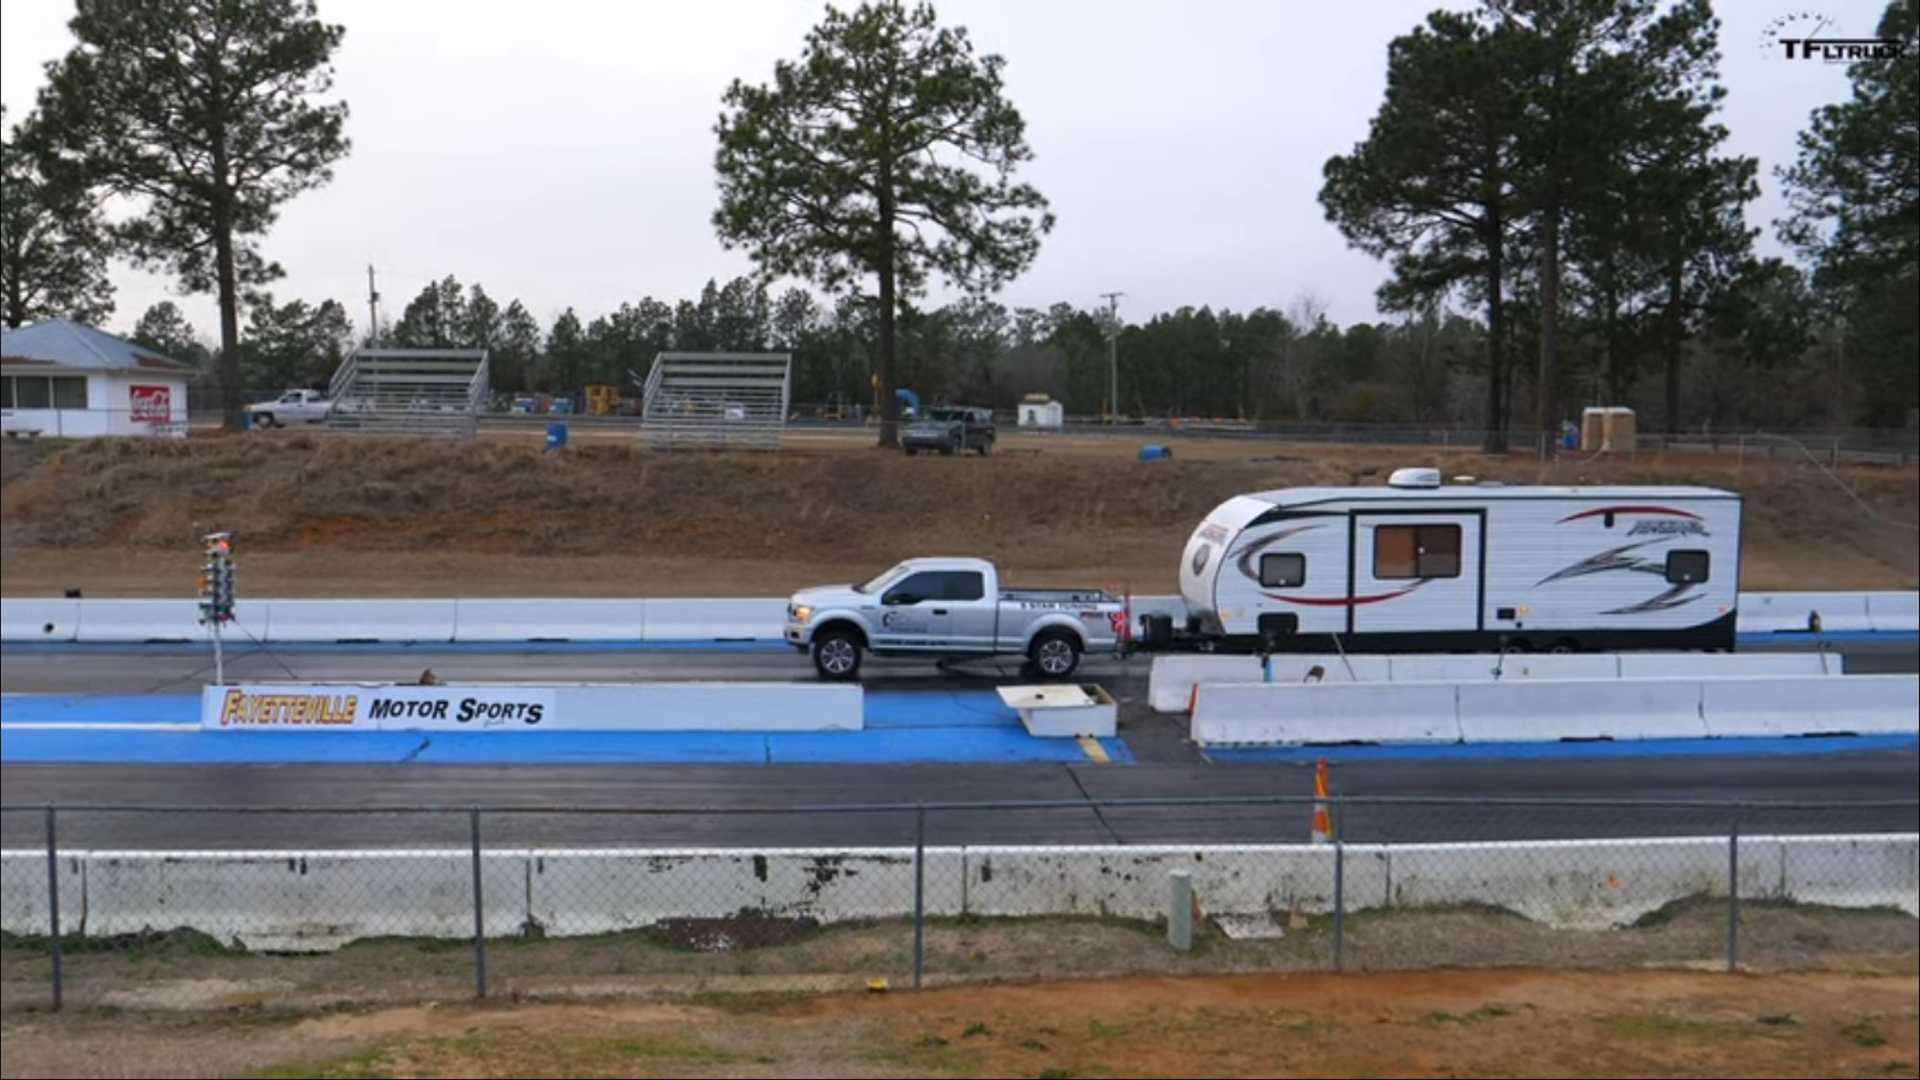 Watch Trailer-Hauling Ford F-150 Break Spectacularly In Drag Race